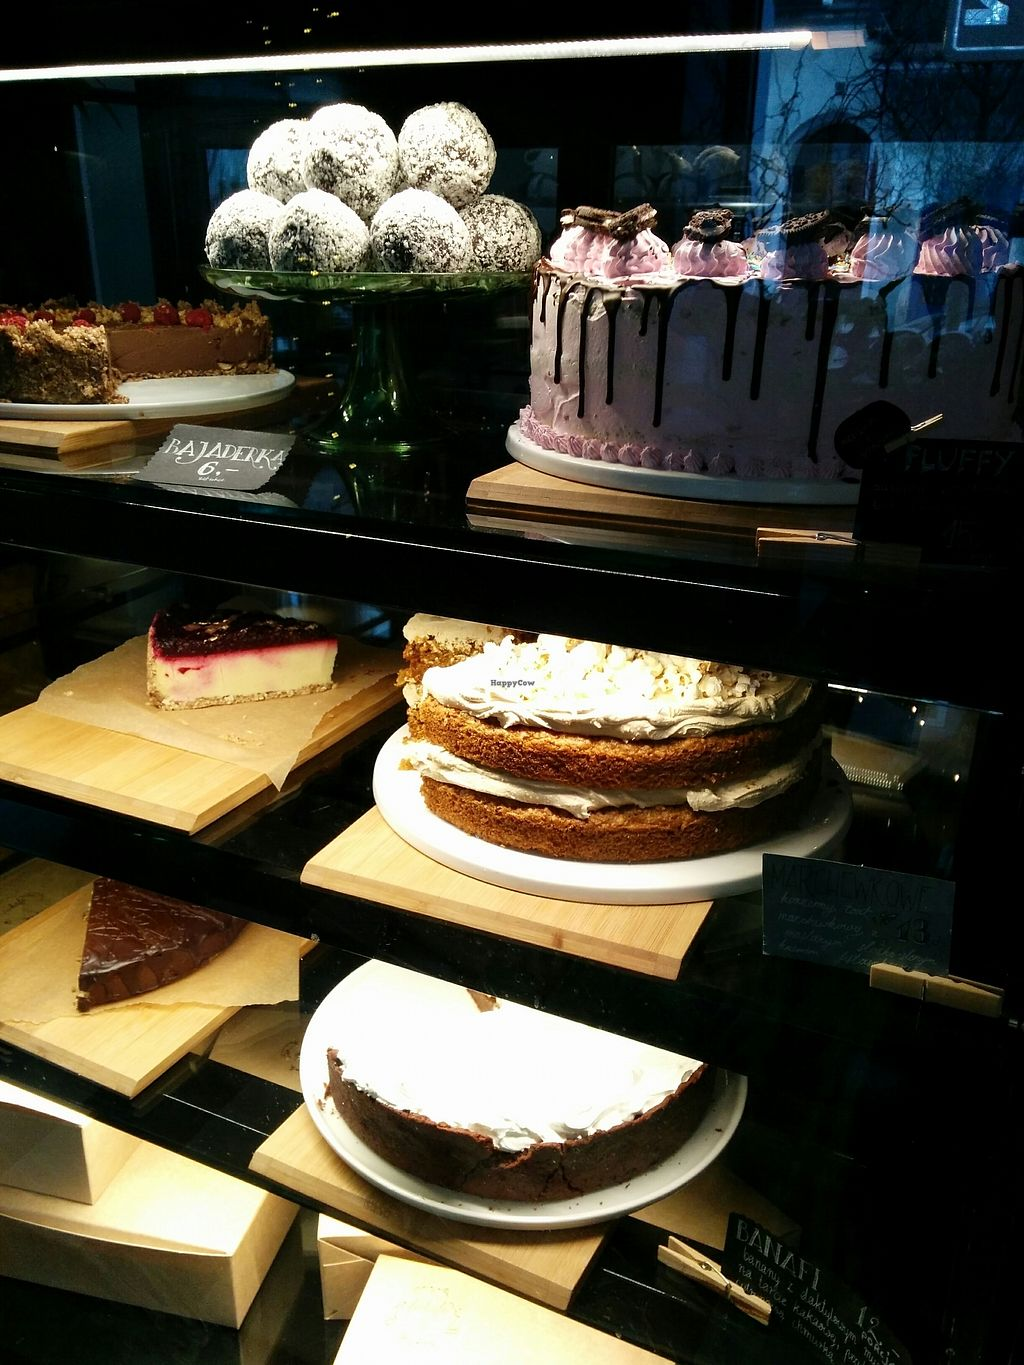 """Photo of Fukafe  by <a href=""""/members/profile/CLRtraveller"""">CLRtraveller</a> <br/>cakes  <br/> February 24, 2018  - <a href='/contact/abuse/image/30227/363162'>Report</a>"""